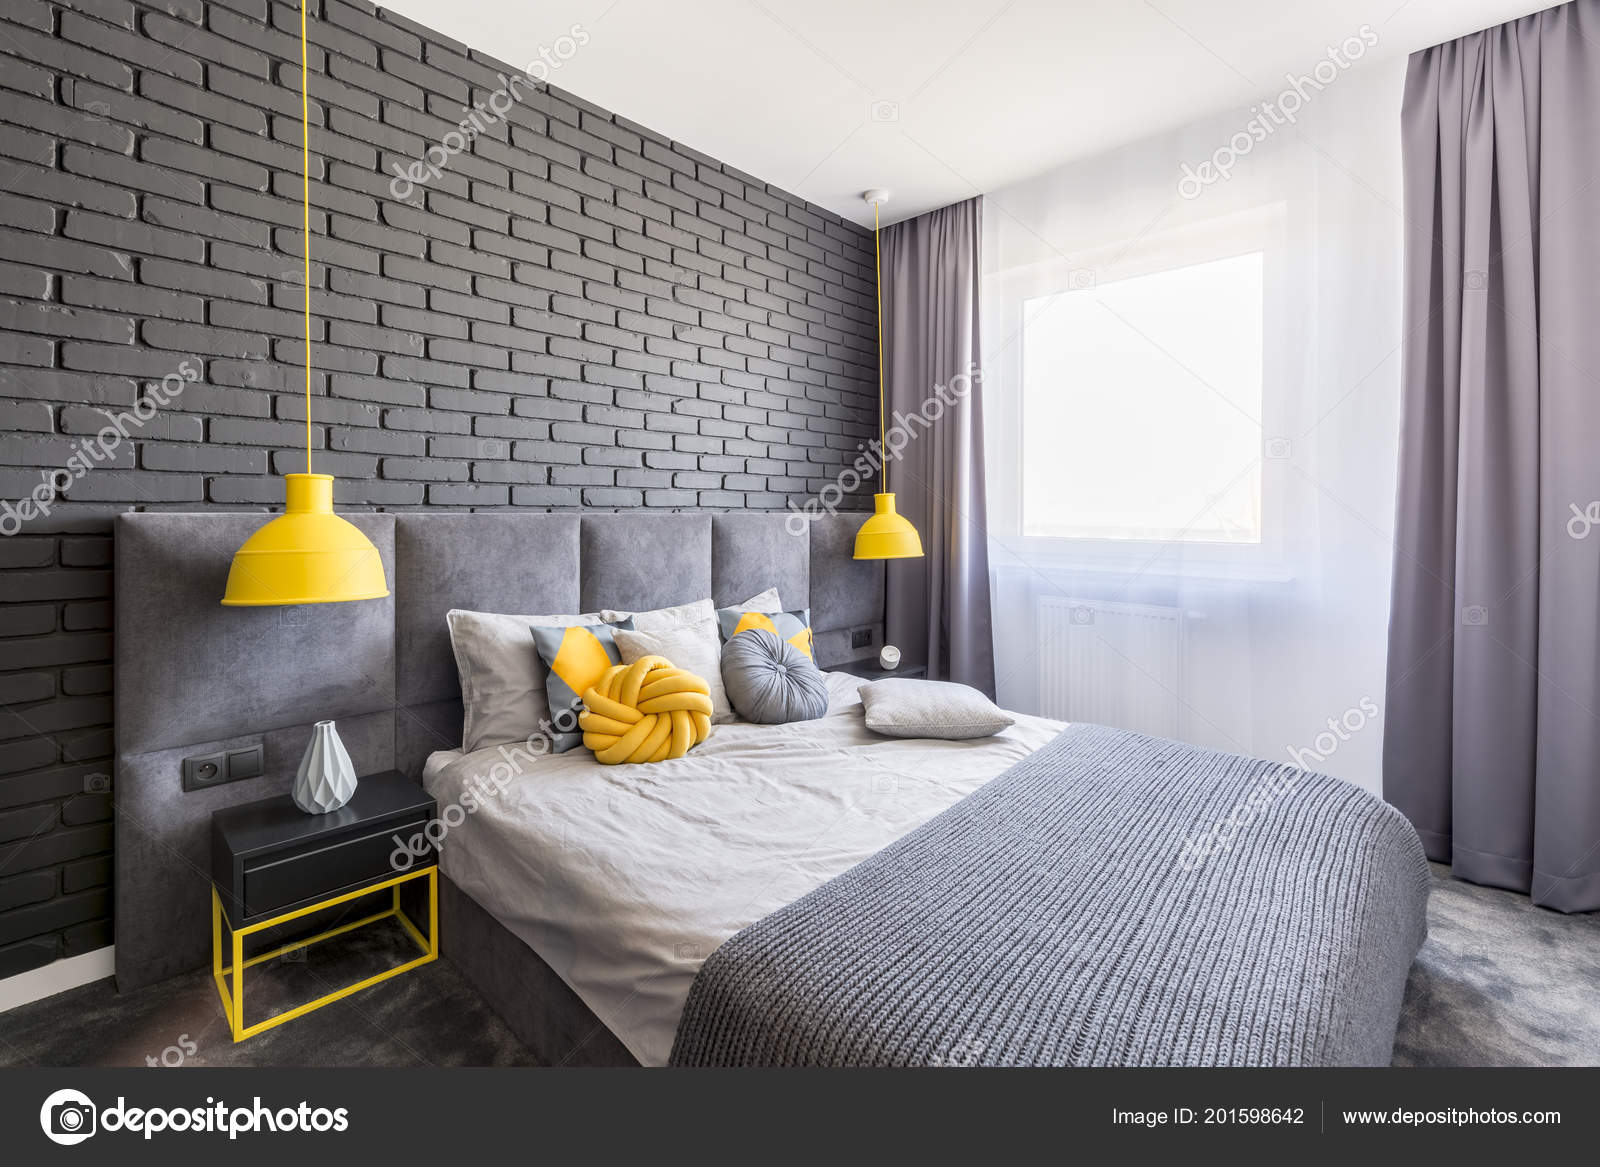 Real Photo Grey Yellow Bedroom Interior Window Curtains Brick Wall ...